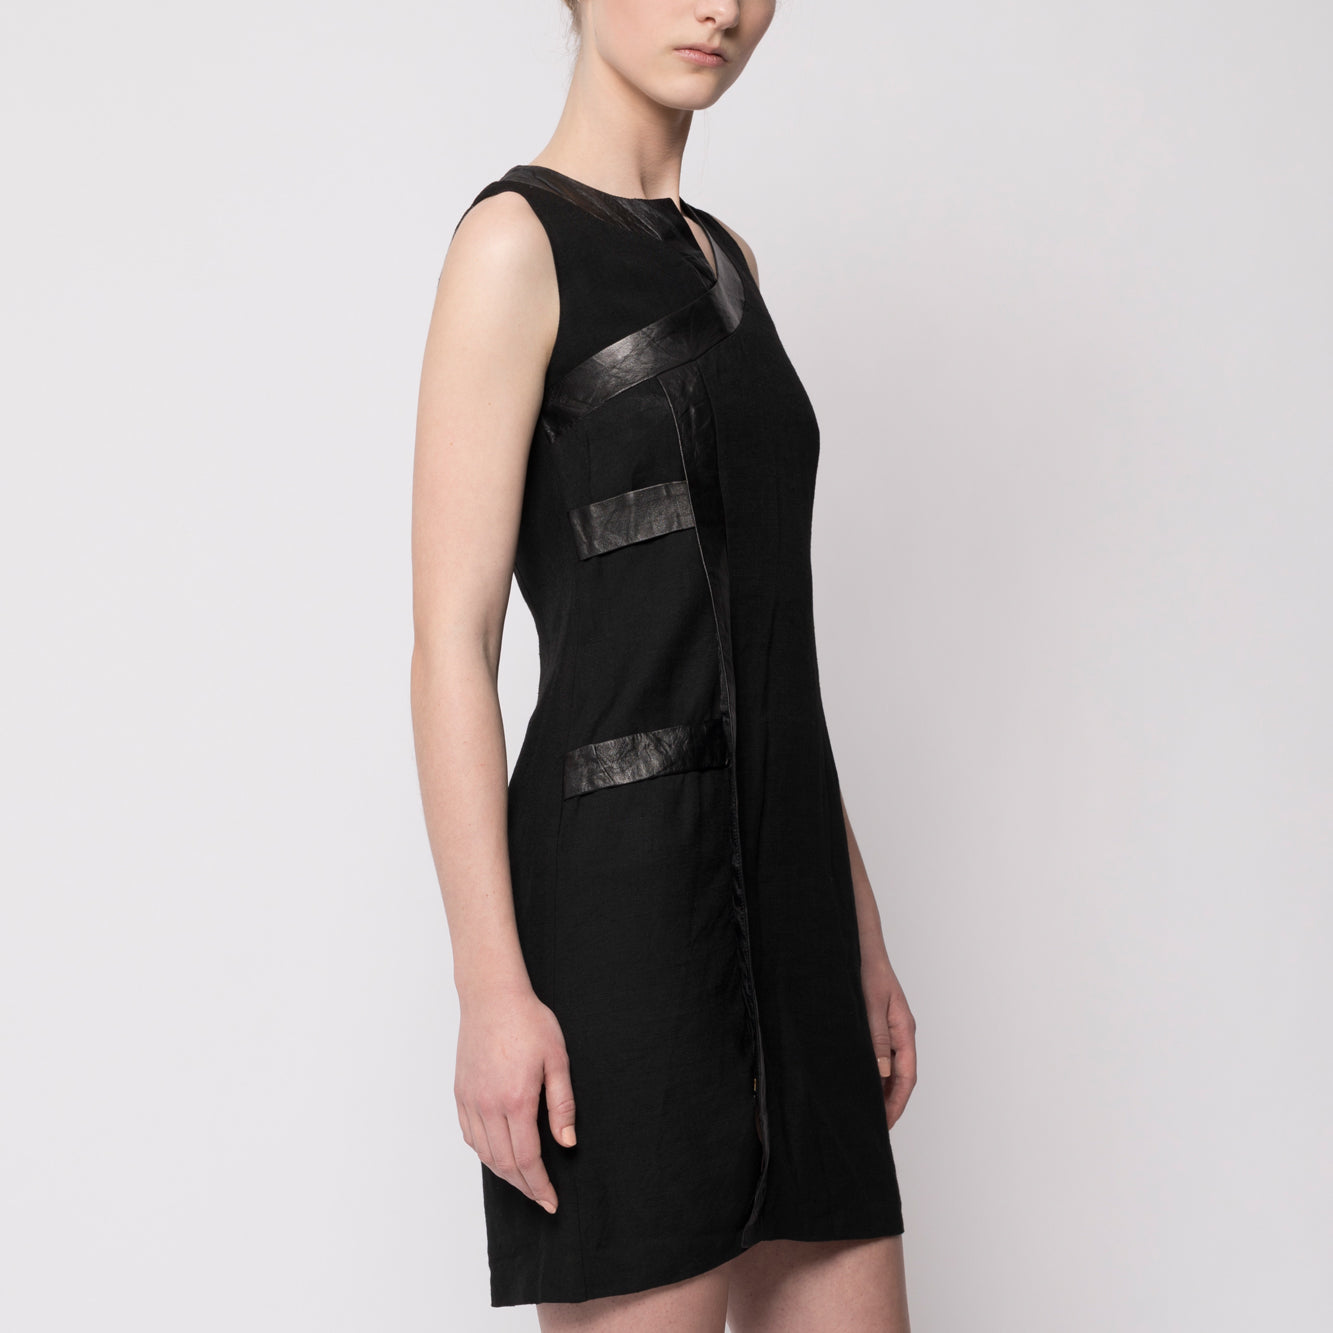 Paneled leather detail dress - Tindi